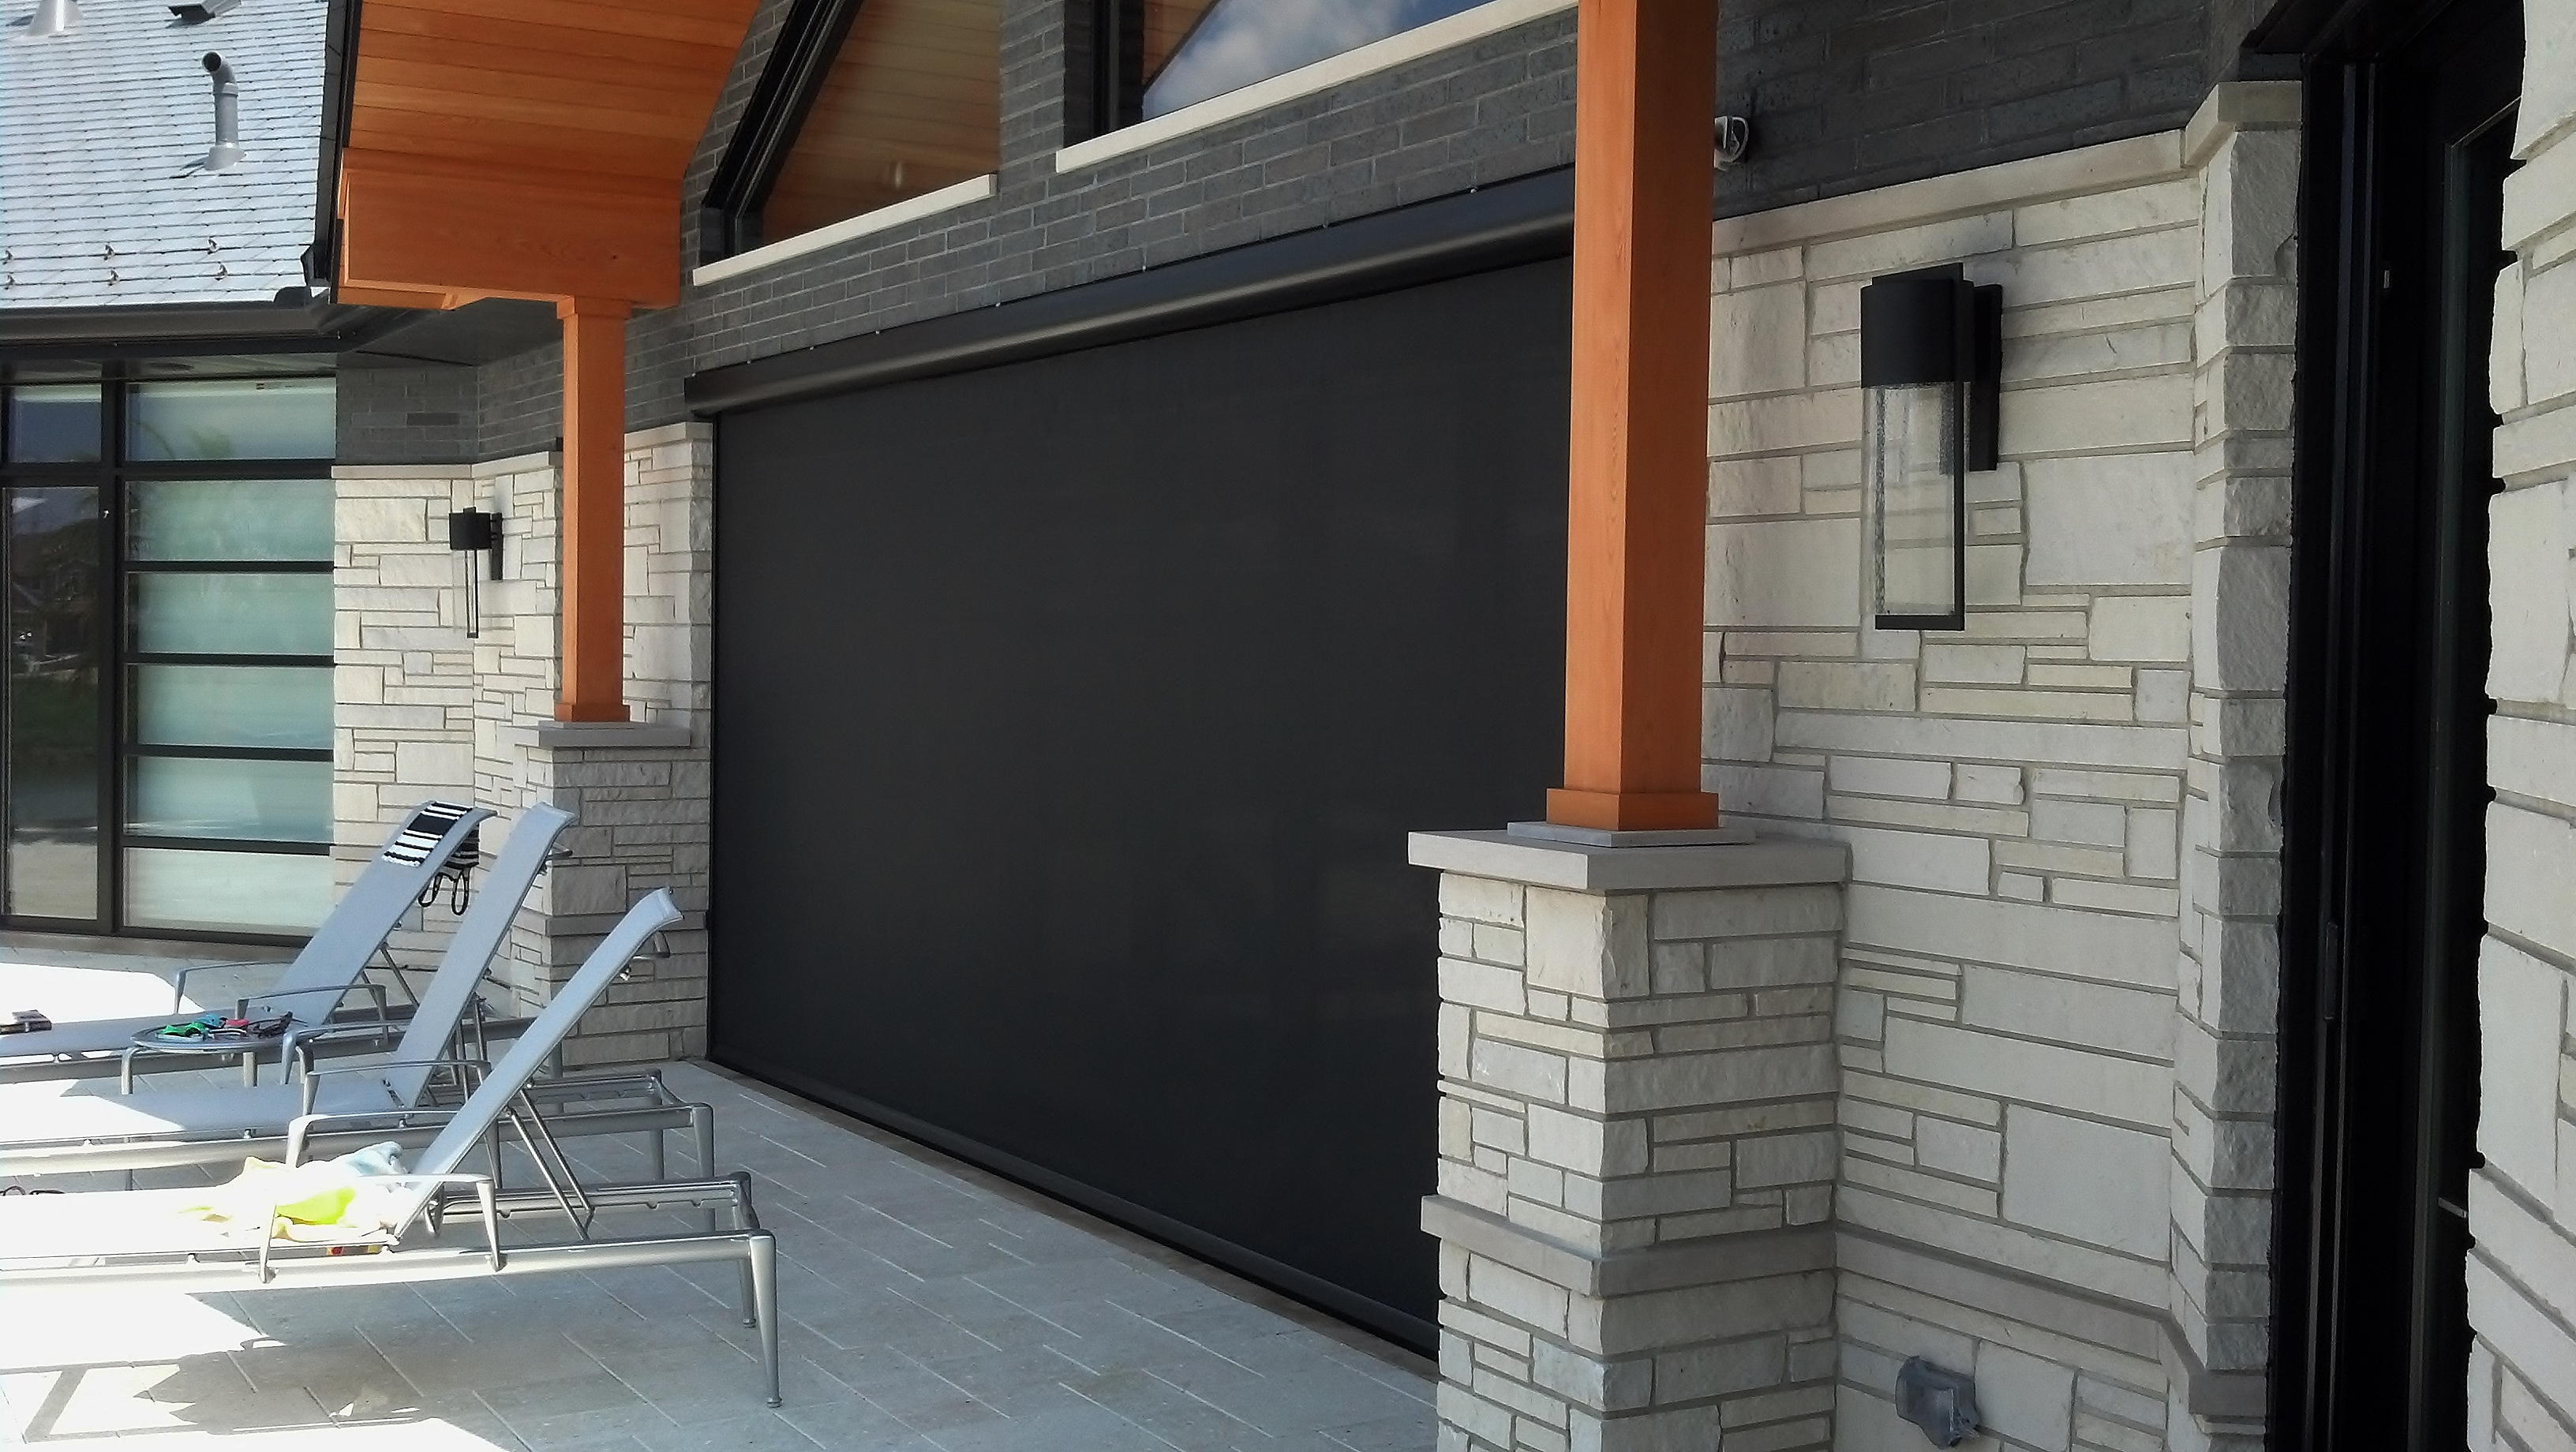 Elegant MagnaTrack Motorized Retractable Screens